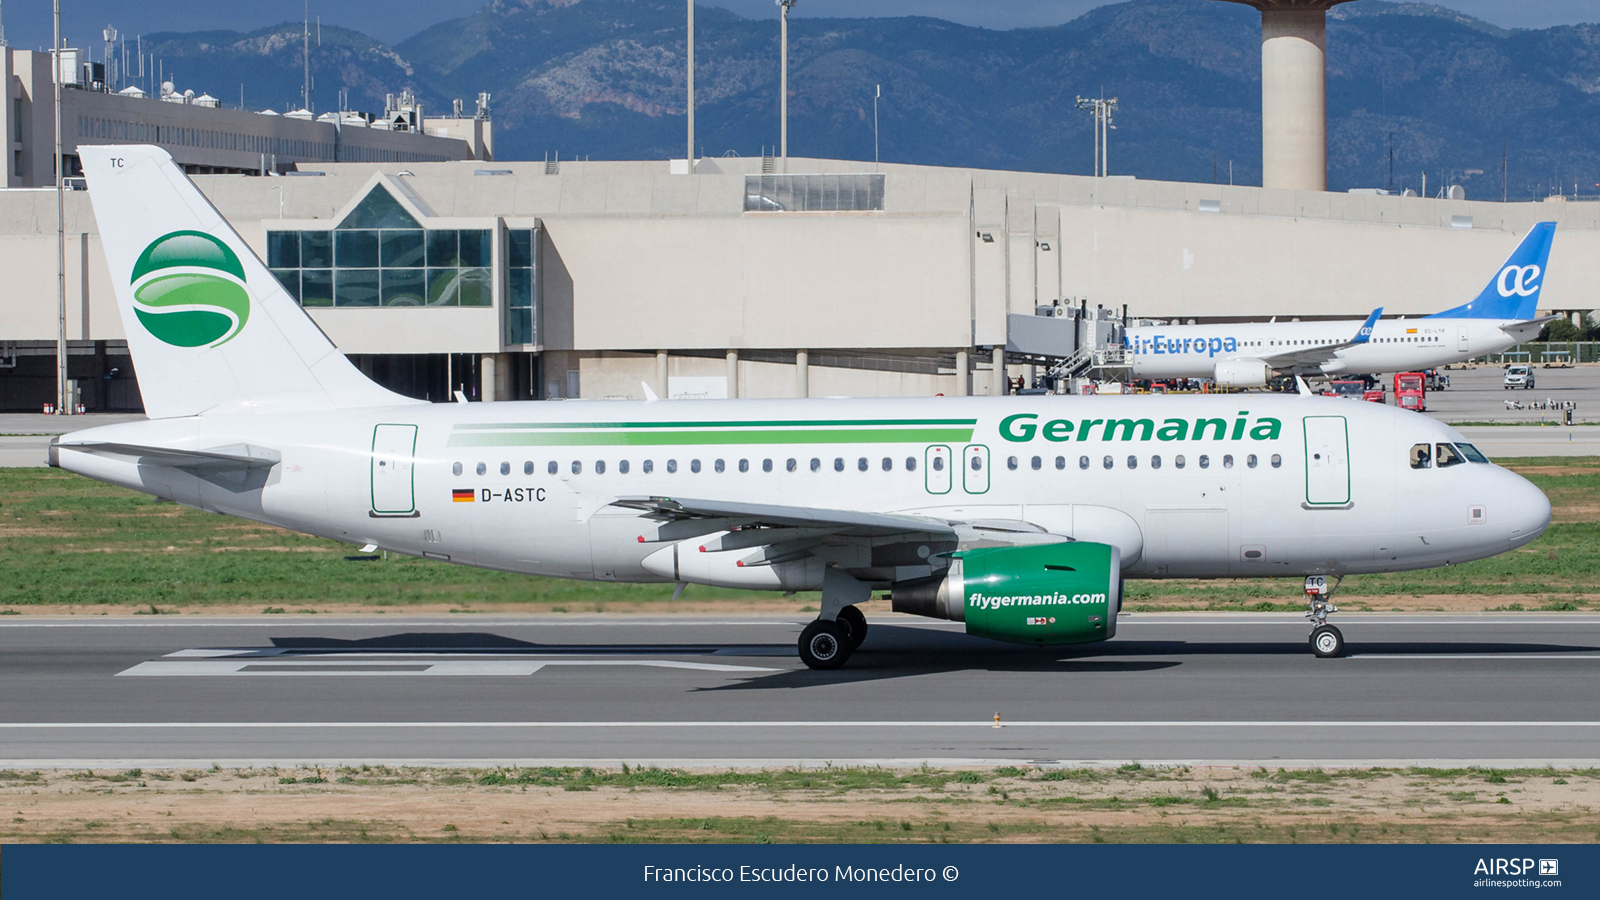 Germania  Airbus A319  D-ASTC